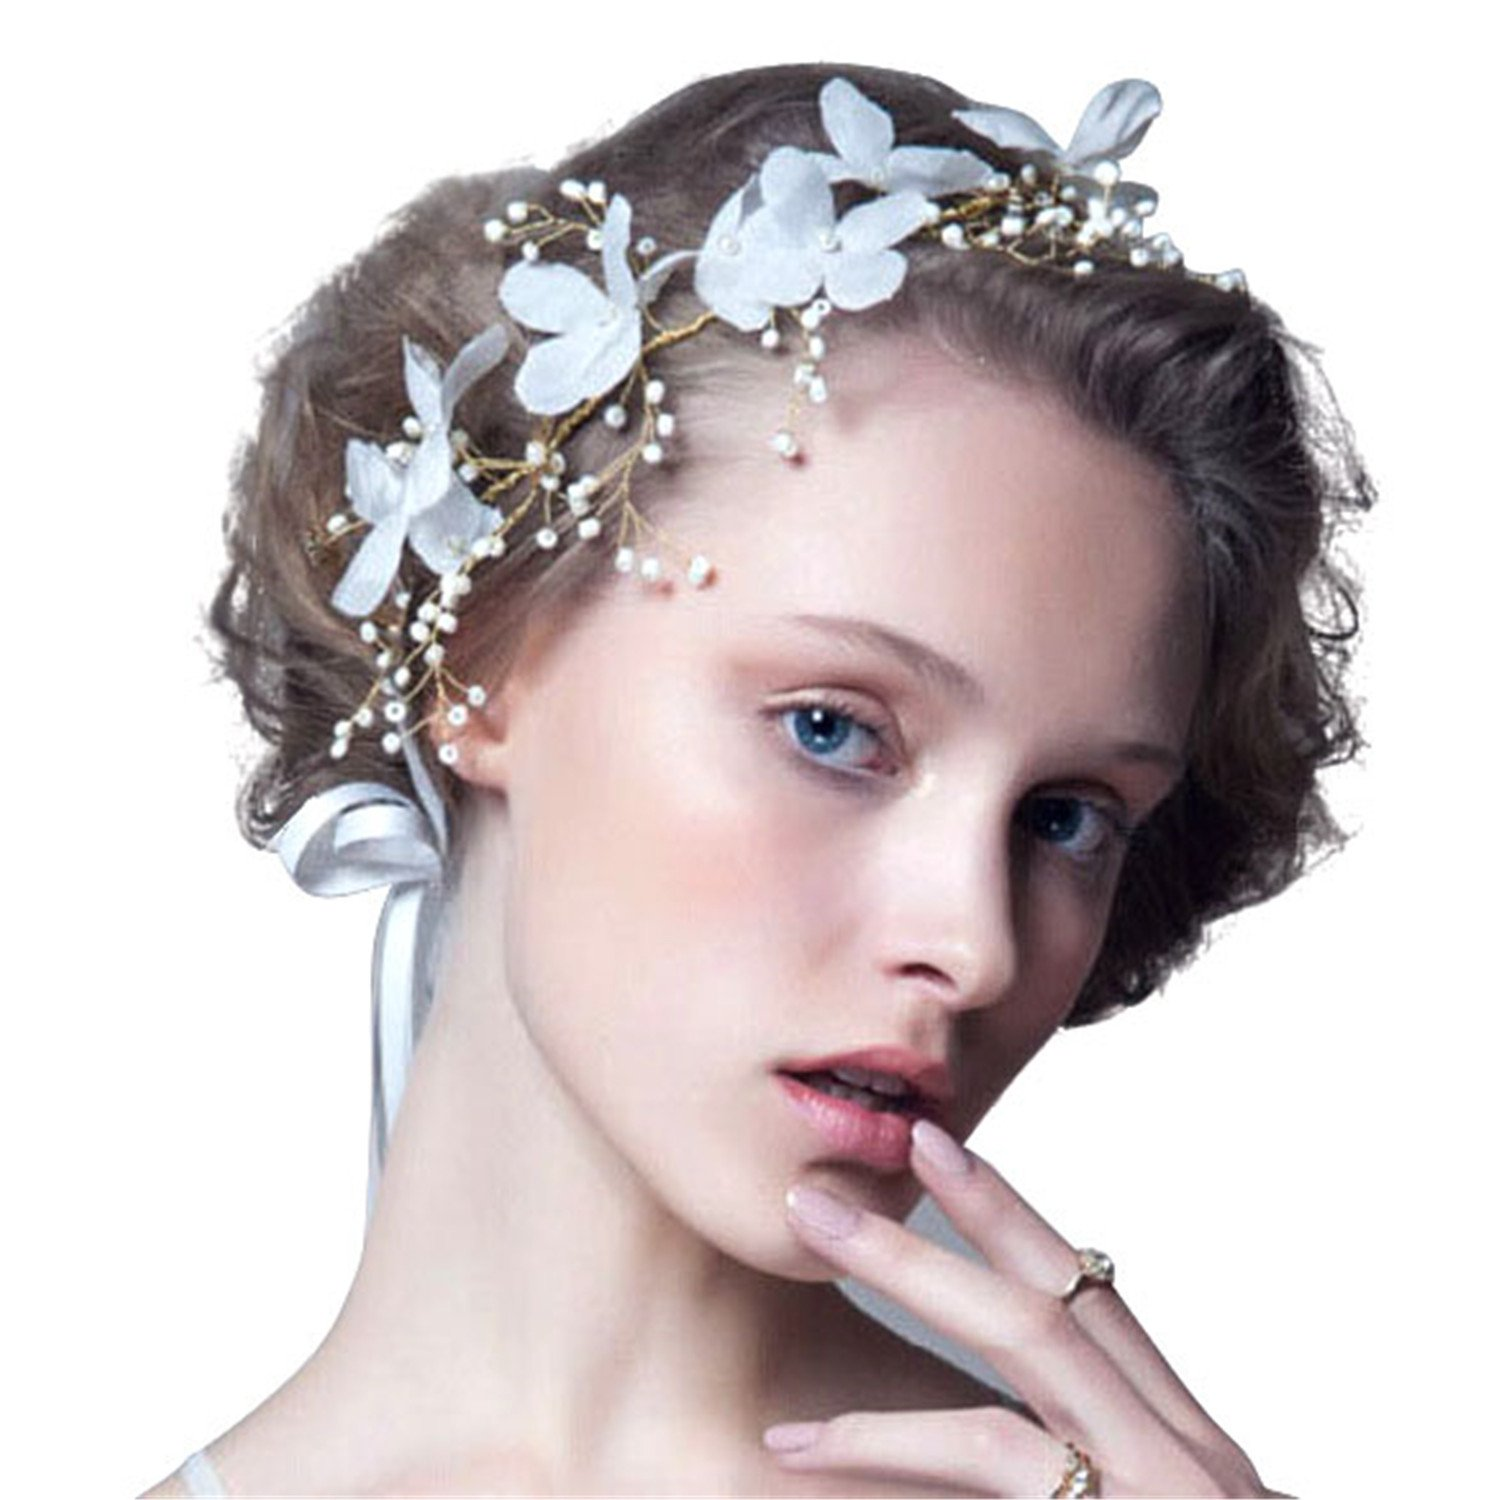 fc756feae96 Buy Rrimin Pearl Bead Flower Headwear Bridal Wedding Handmade Women s Hair  Accessories - White Online at Low Prices in India